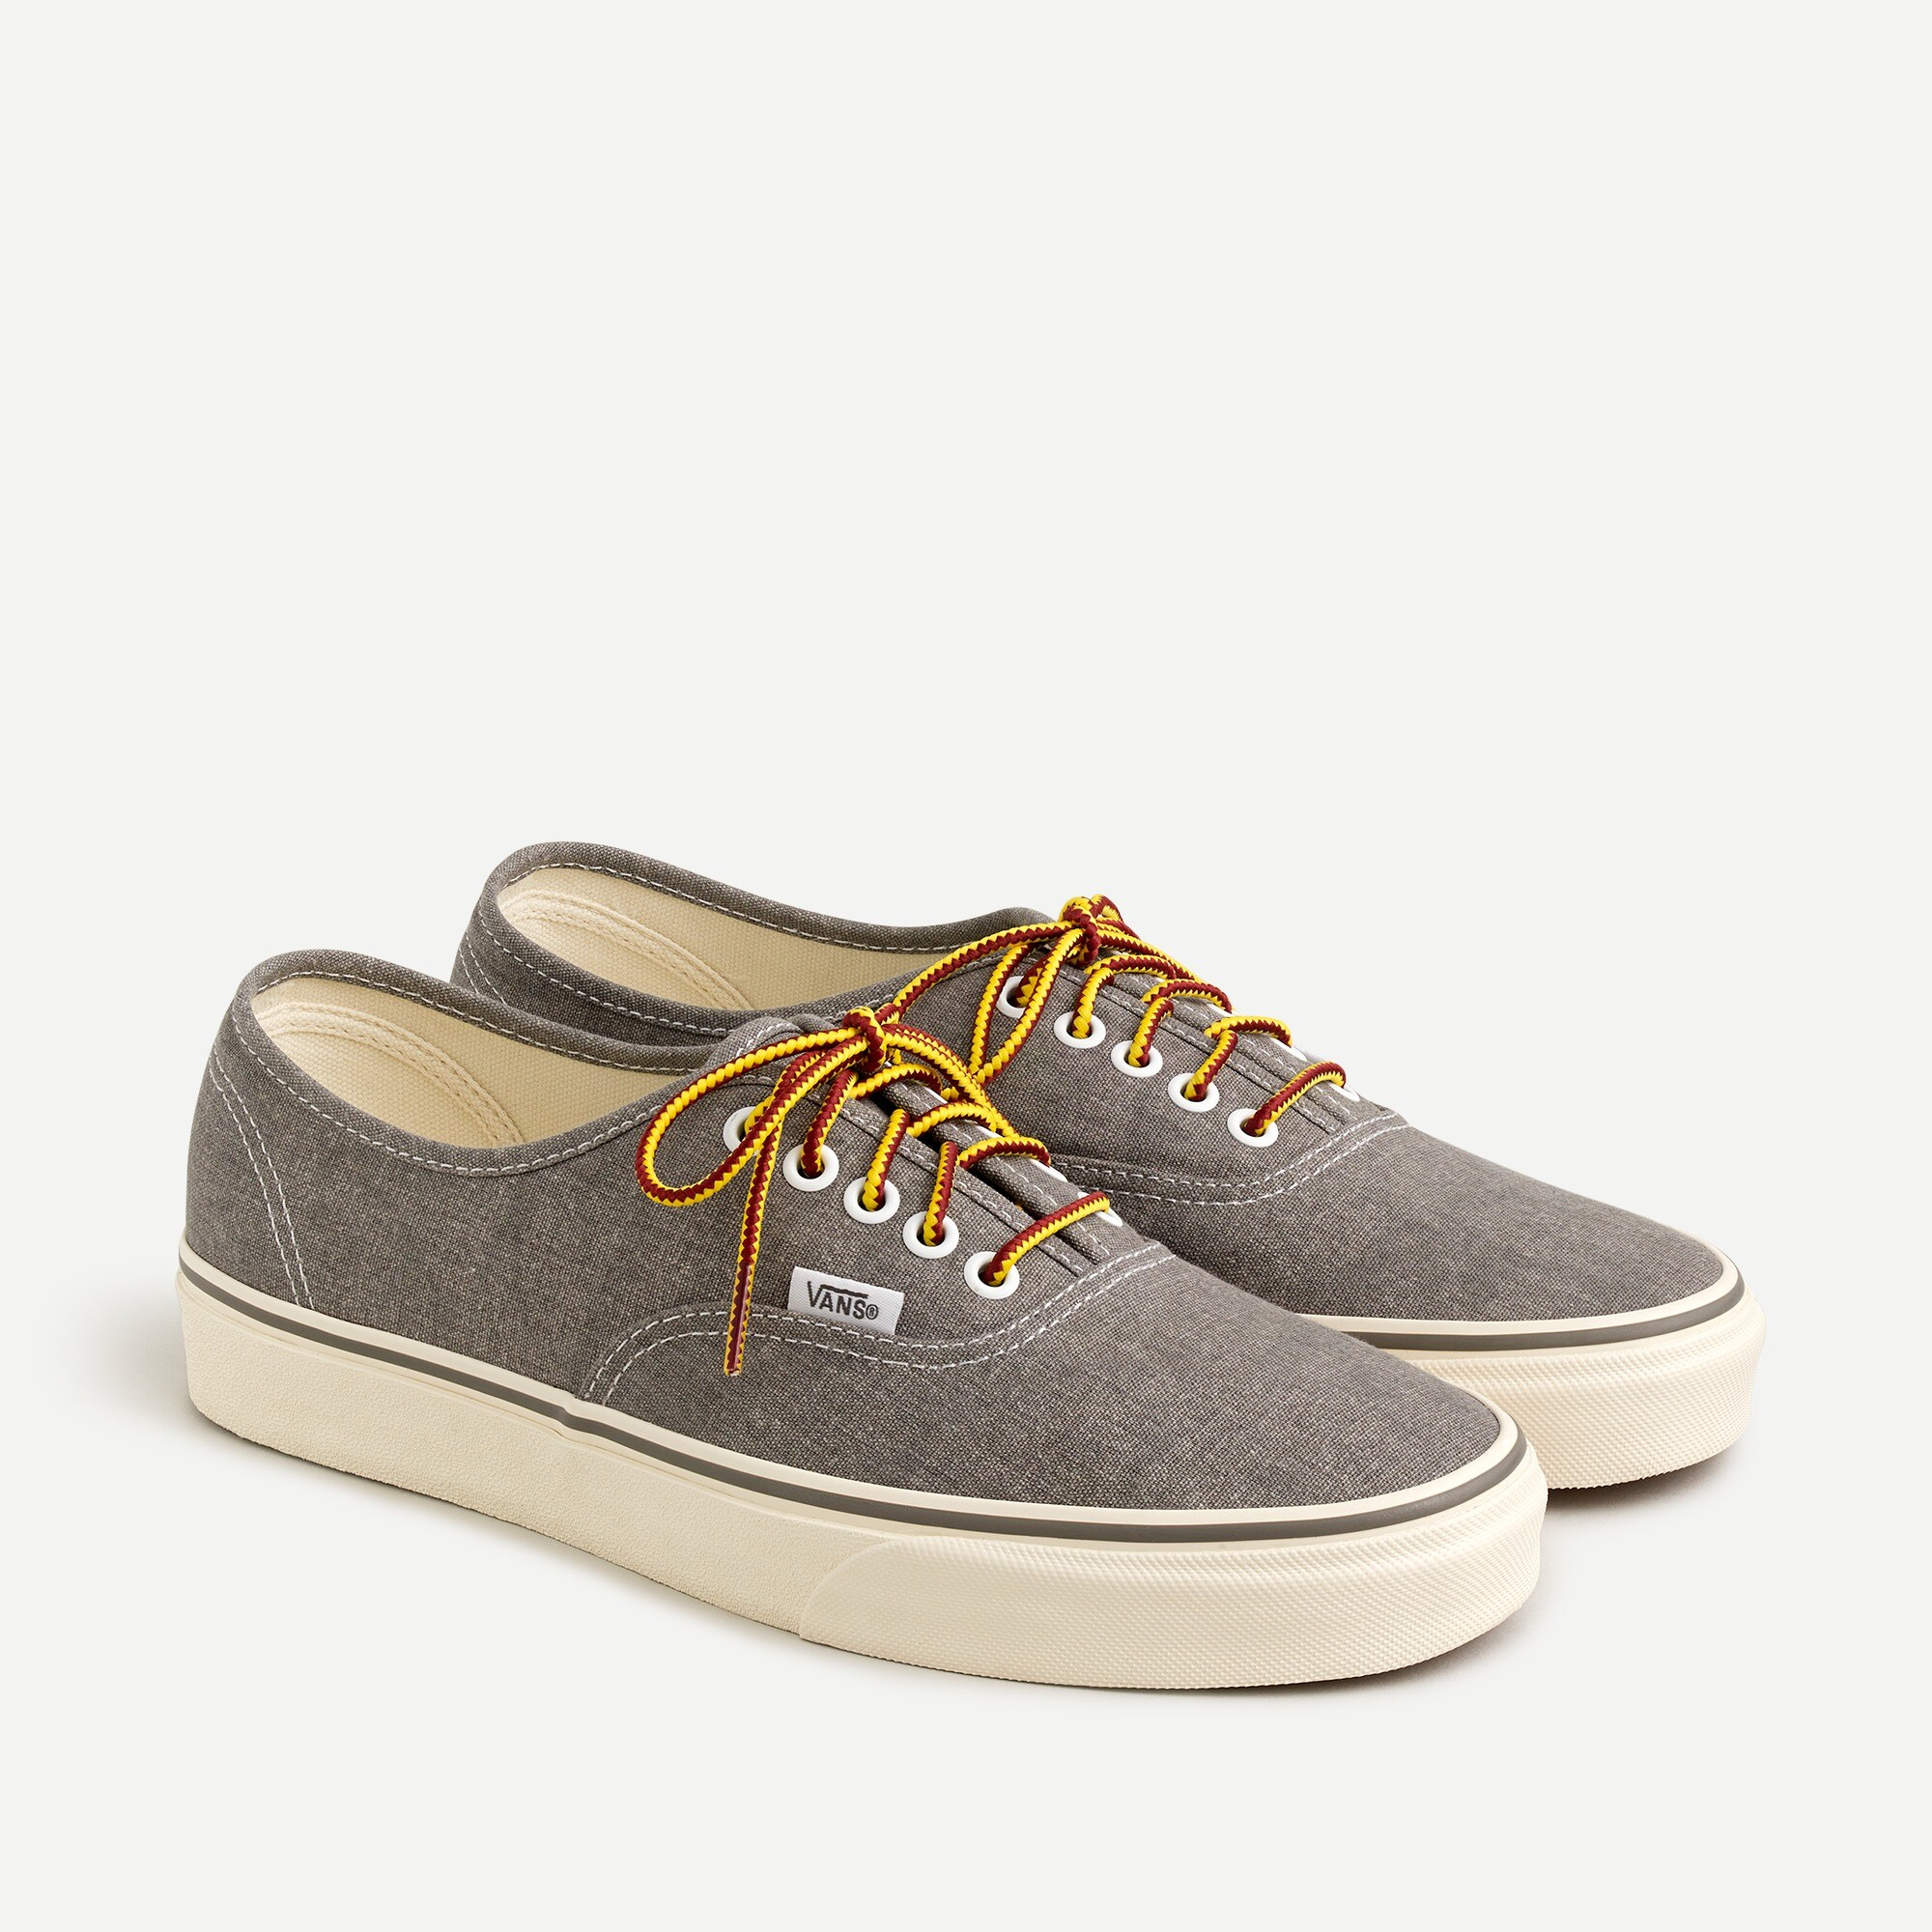 Men s Vans     For J Crew Washed Canvas Authentic Sneakers   Men s     men s vans reg  for j crew washed canvas authentic sneakers   men s footwear